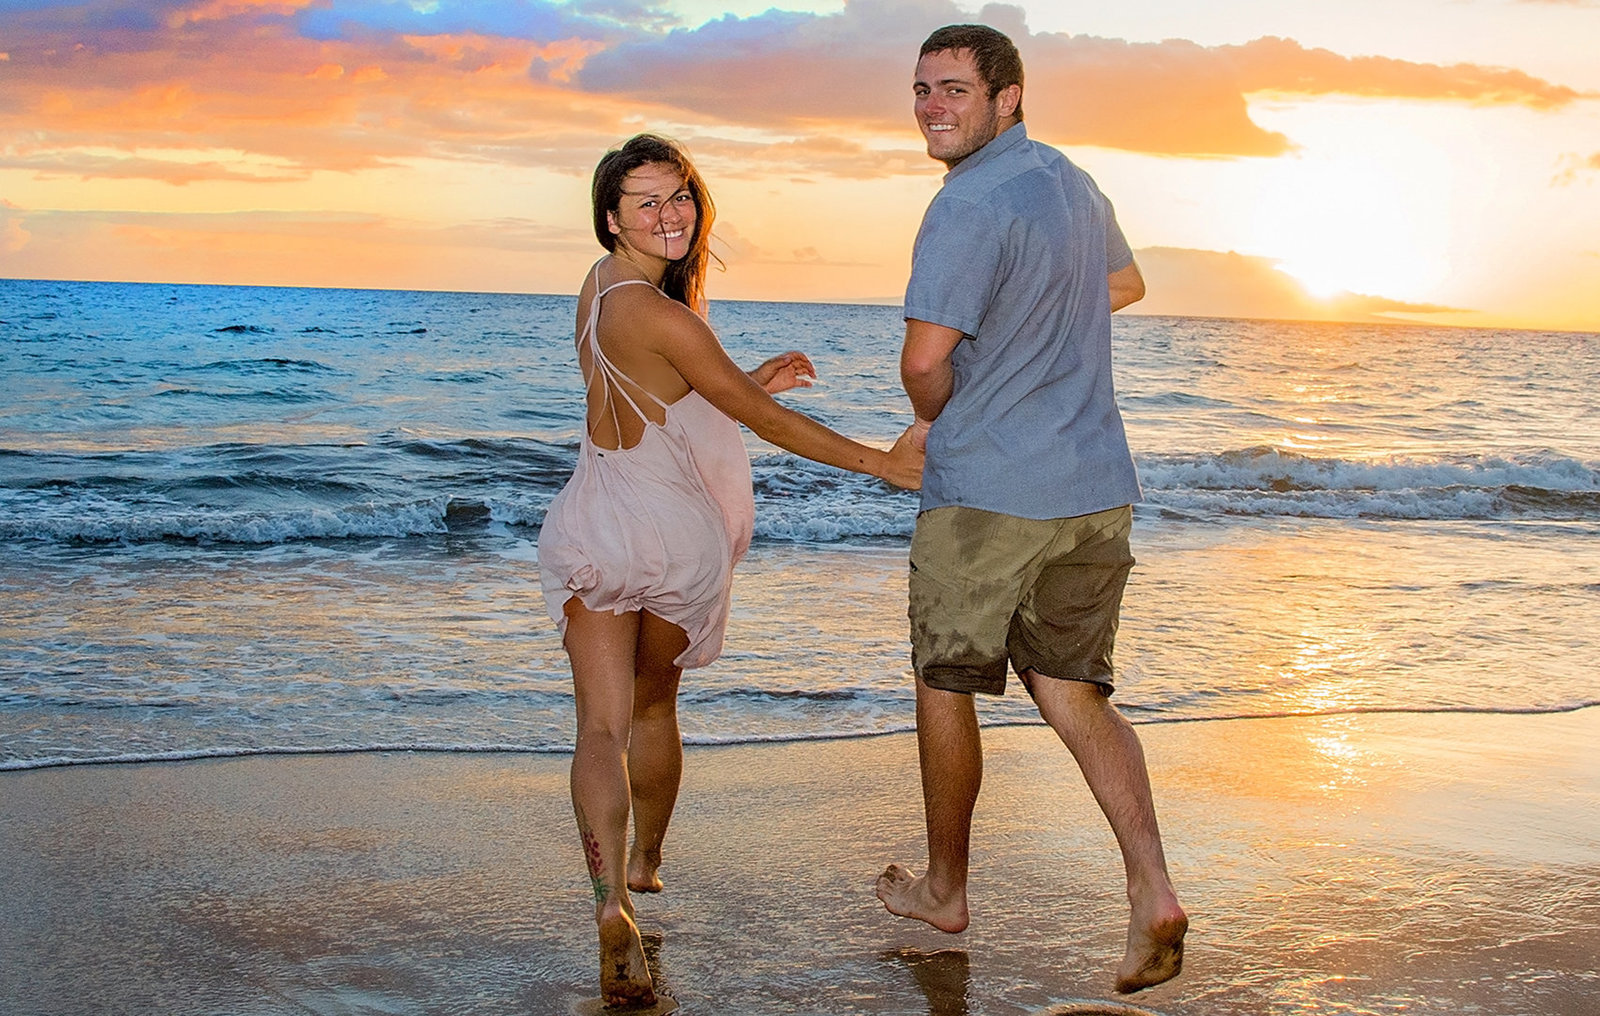 Best Prices for photographers | Cheapest photographers on Maui  | Kauai | Oahu | Big Island